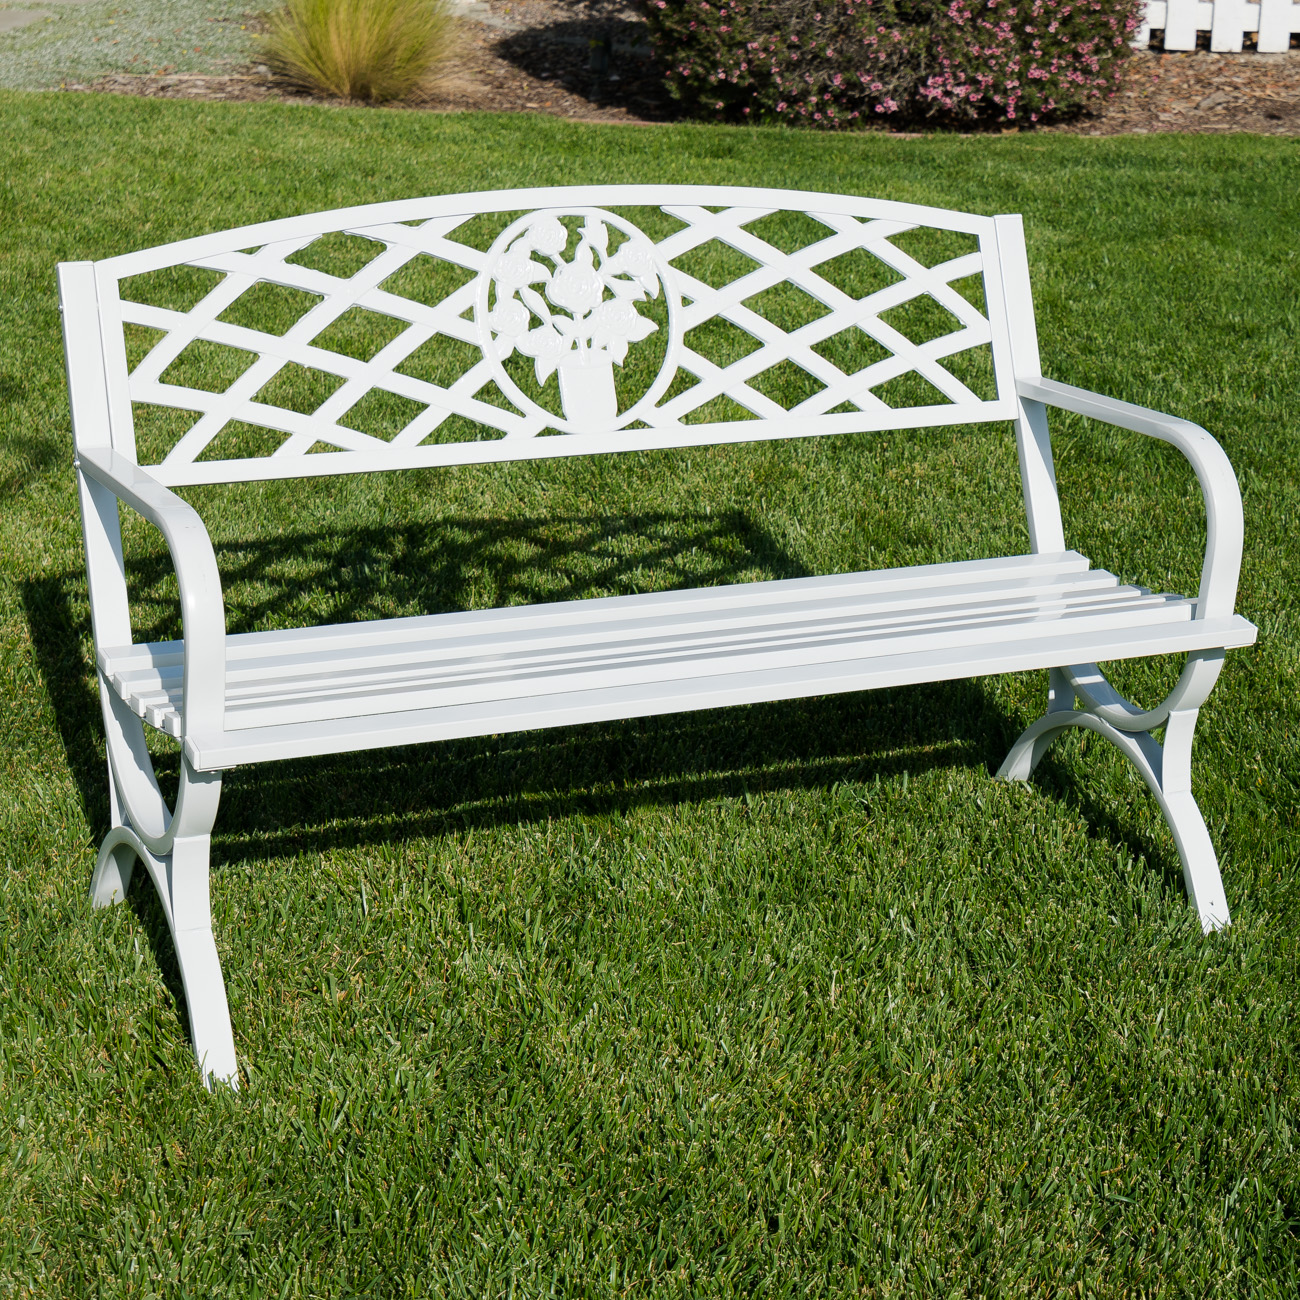 50 Inch Outdoor Park Bench Garden Backyard Chair Porch Seat Steel Frame White Ebay